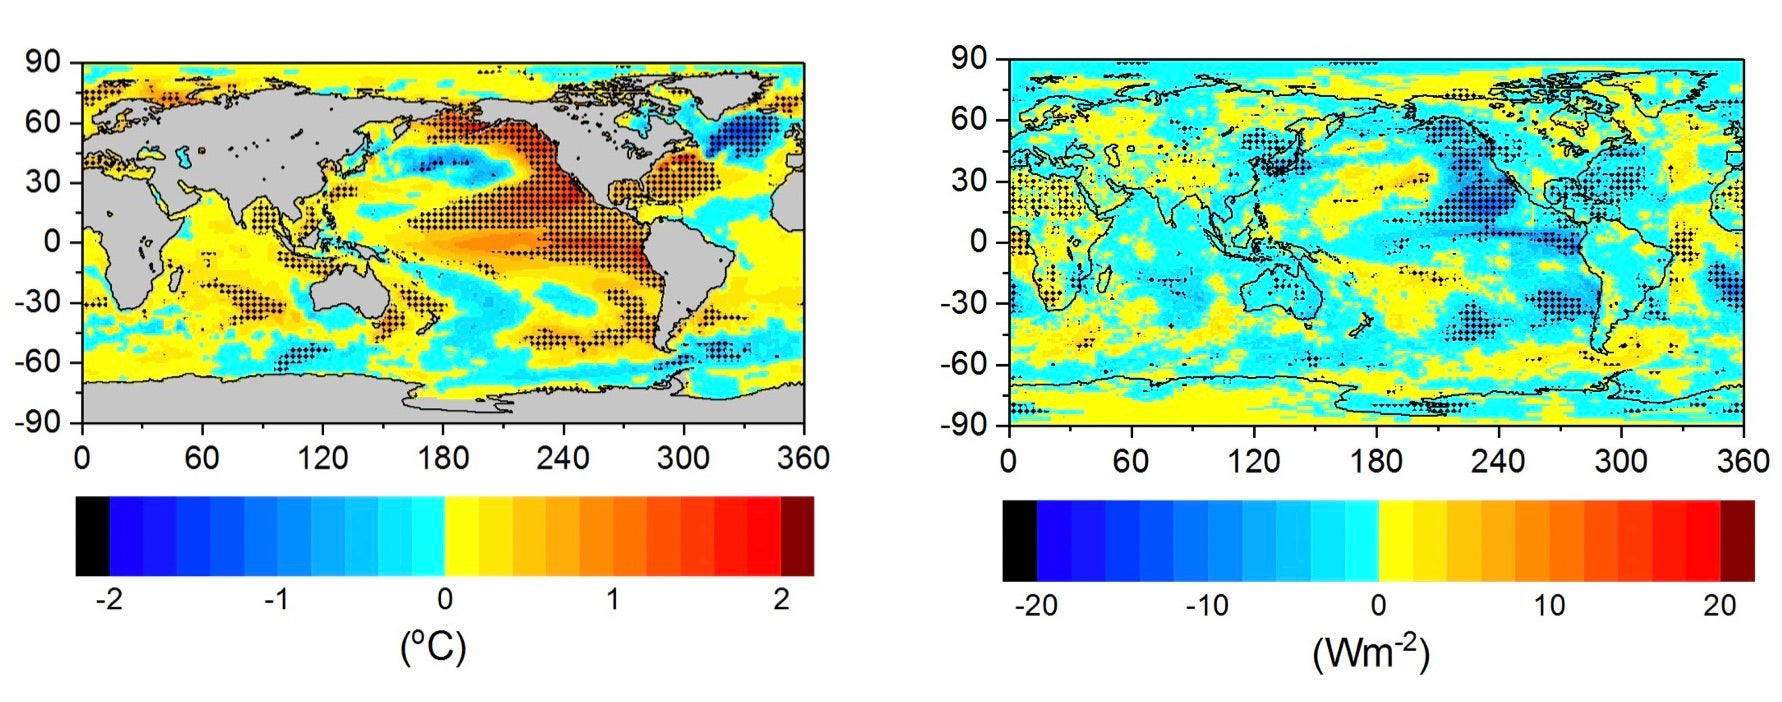 Changes in SST and top-of-atmosphere radiation reflected from low clouds during vs. after hiatus